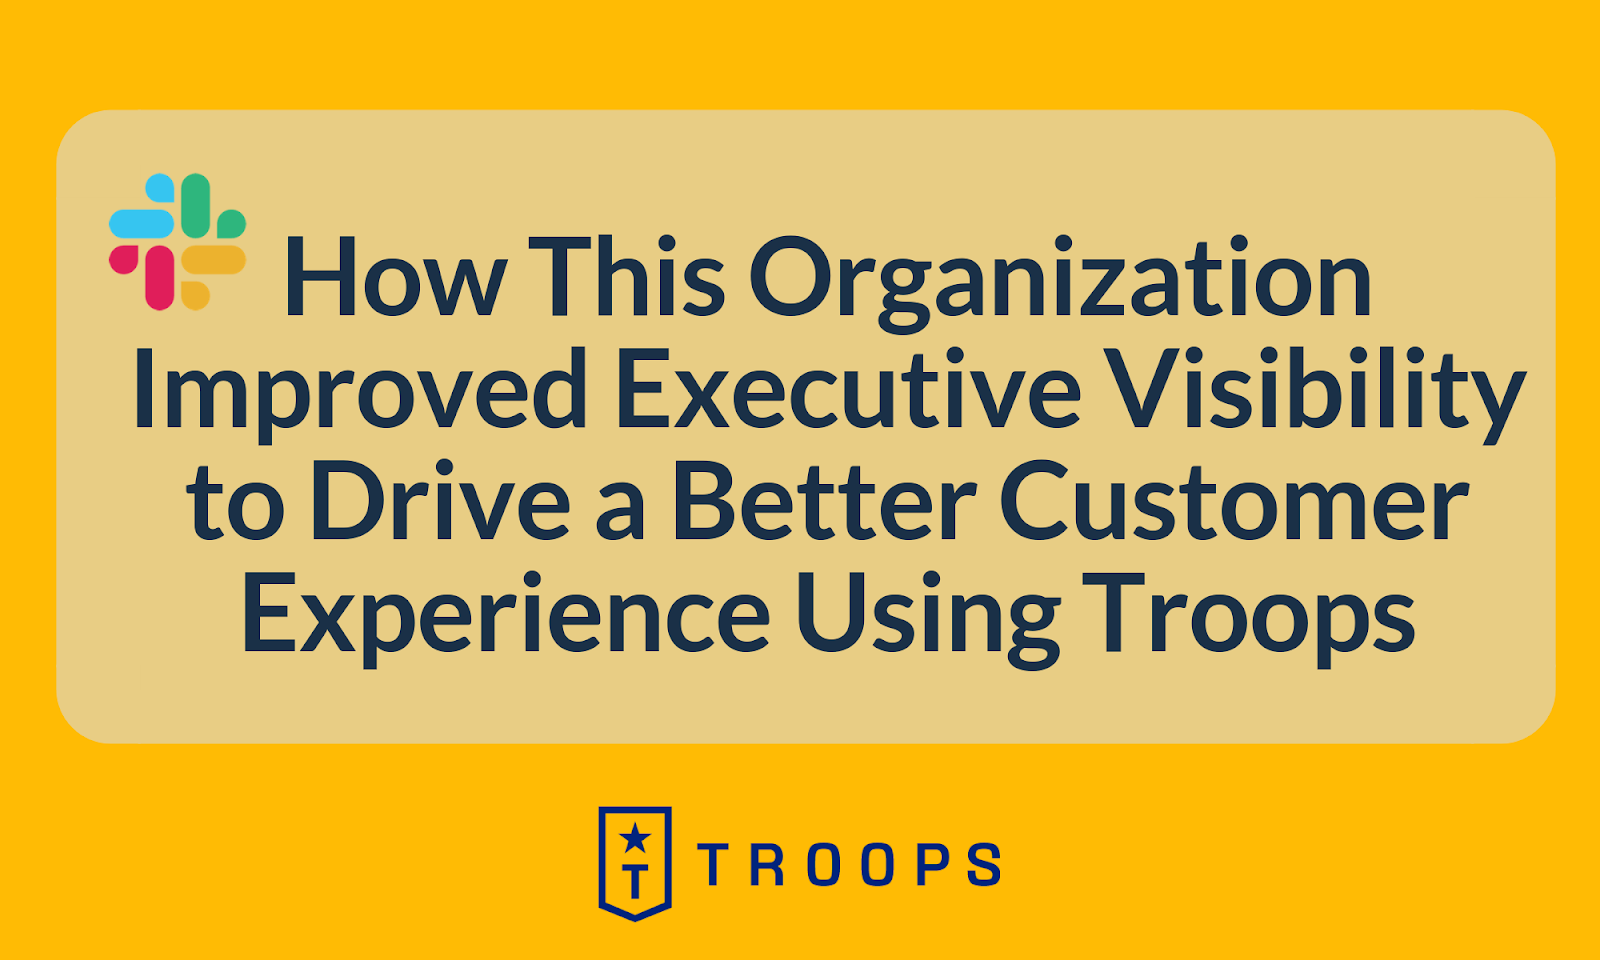 How This Organization Improved Executive Visibility to Drive a Better Customer Experience Using Troops